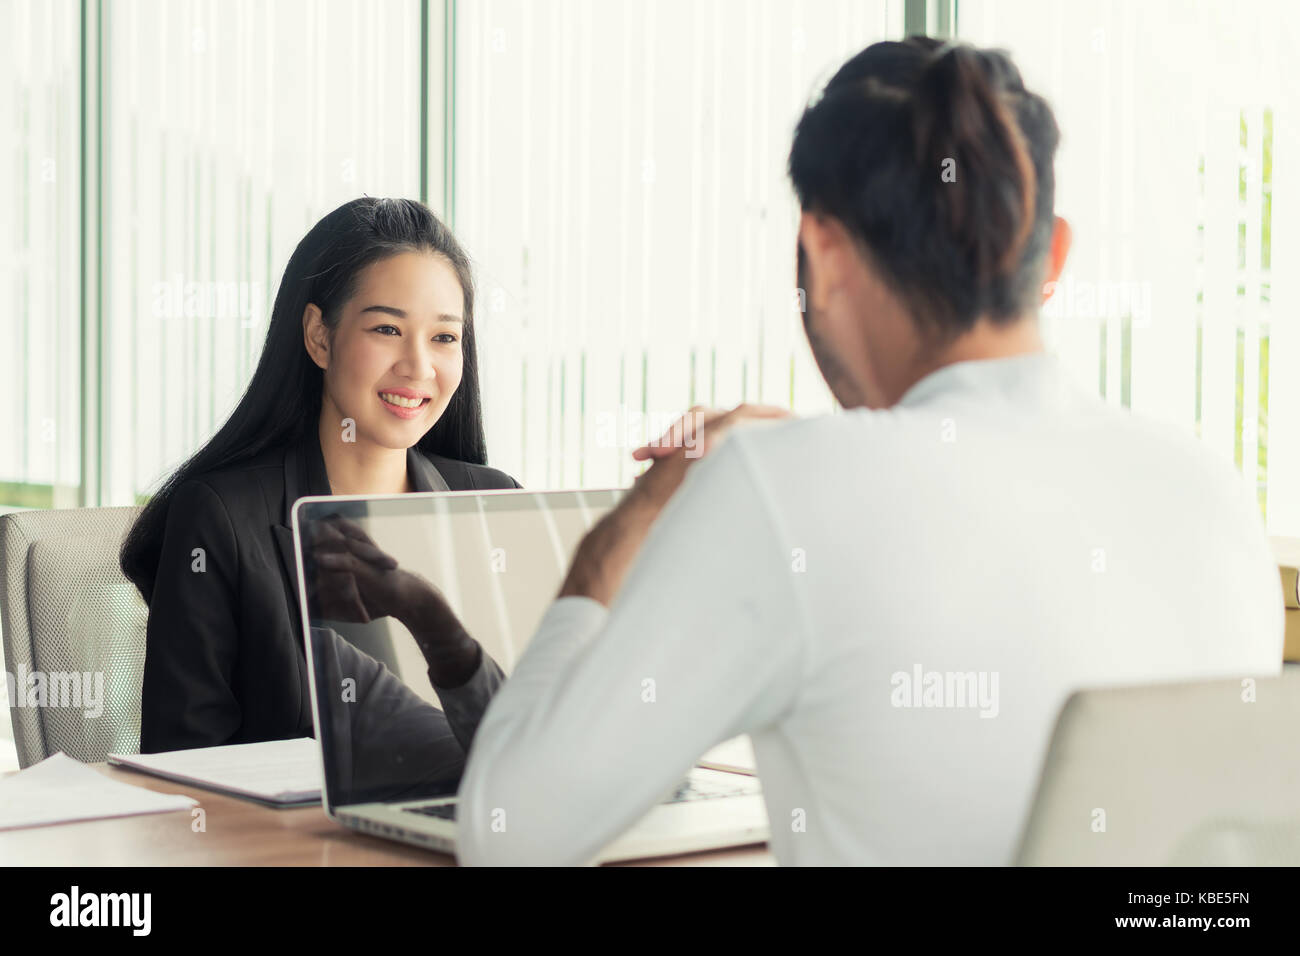 Job interview - Photo of Asian businessman applicant during listen to candidate answers. - Stock Image